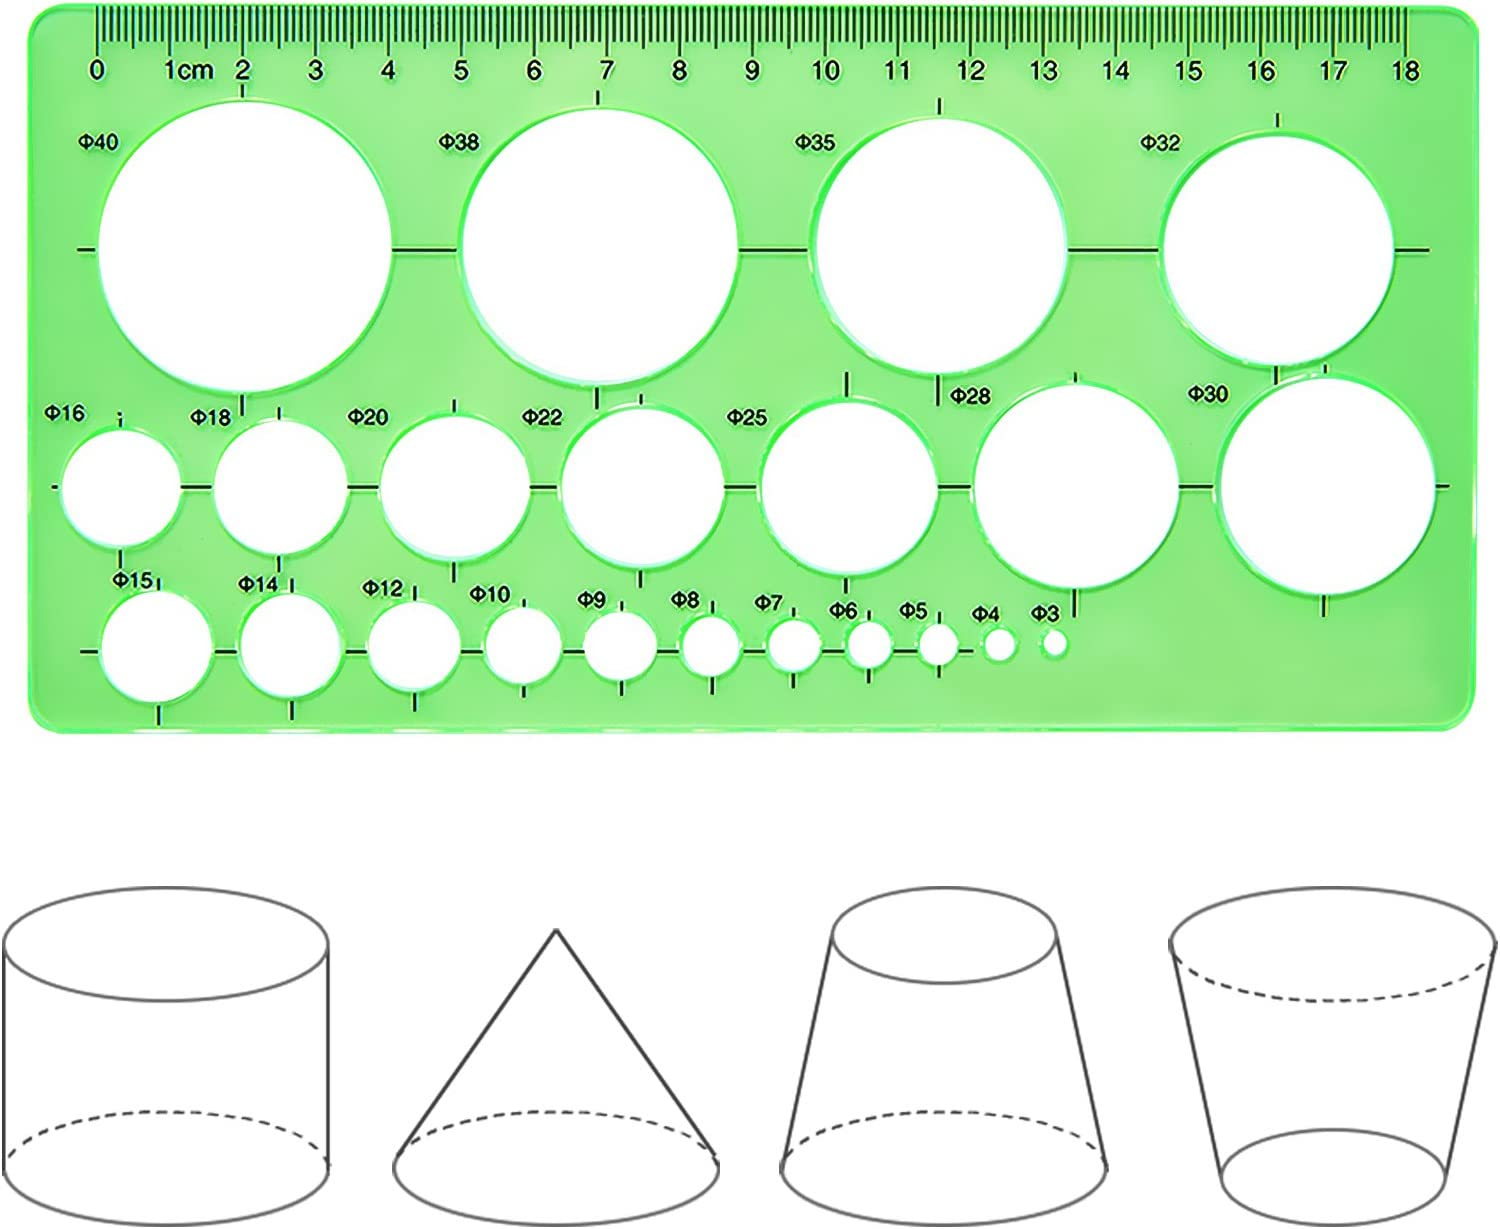 Hestya Circle Template 3 Pieces Plastic Circle and Oval Templates Measuring Templates Rulers Digital Drawing for Office and School Building Formwork Drawings Templates (Clear Green) : Office Products